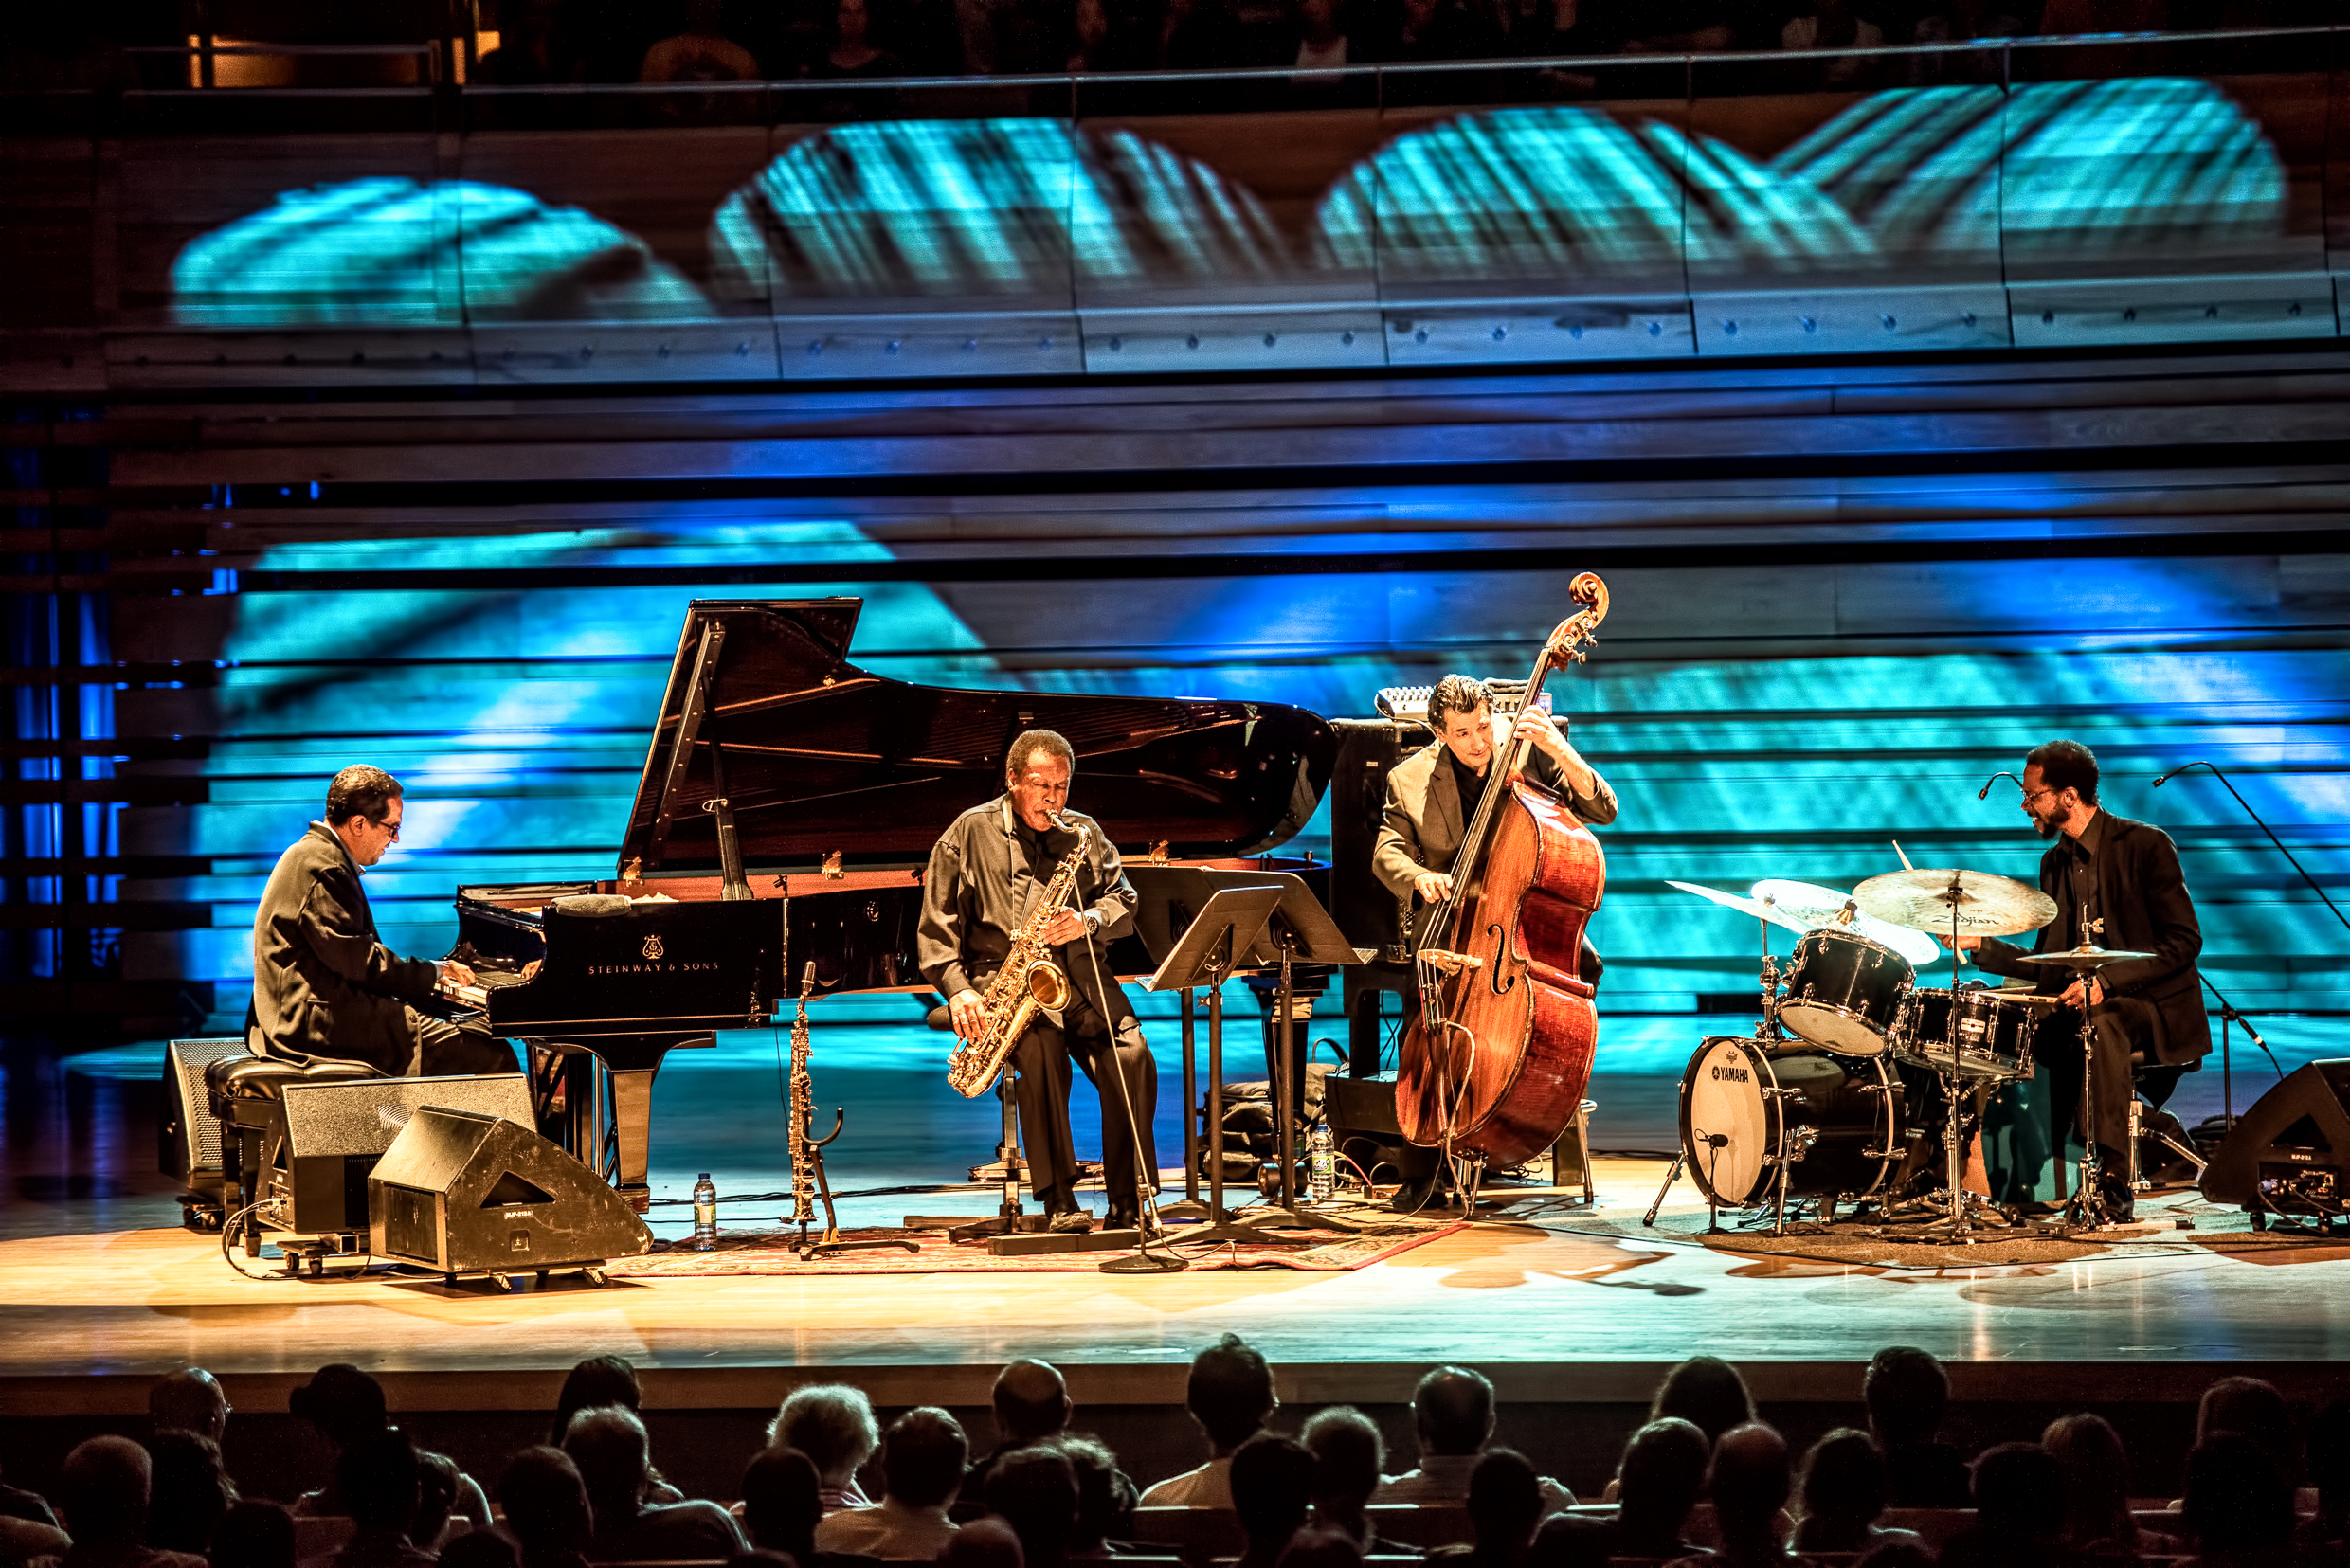 Danilo Perez, Wayne Shorter, John Patitucci and Brian Blade with the Wayne Shorter Quartet at the Montreal International Jazz Festival 2015